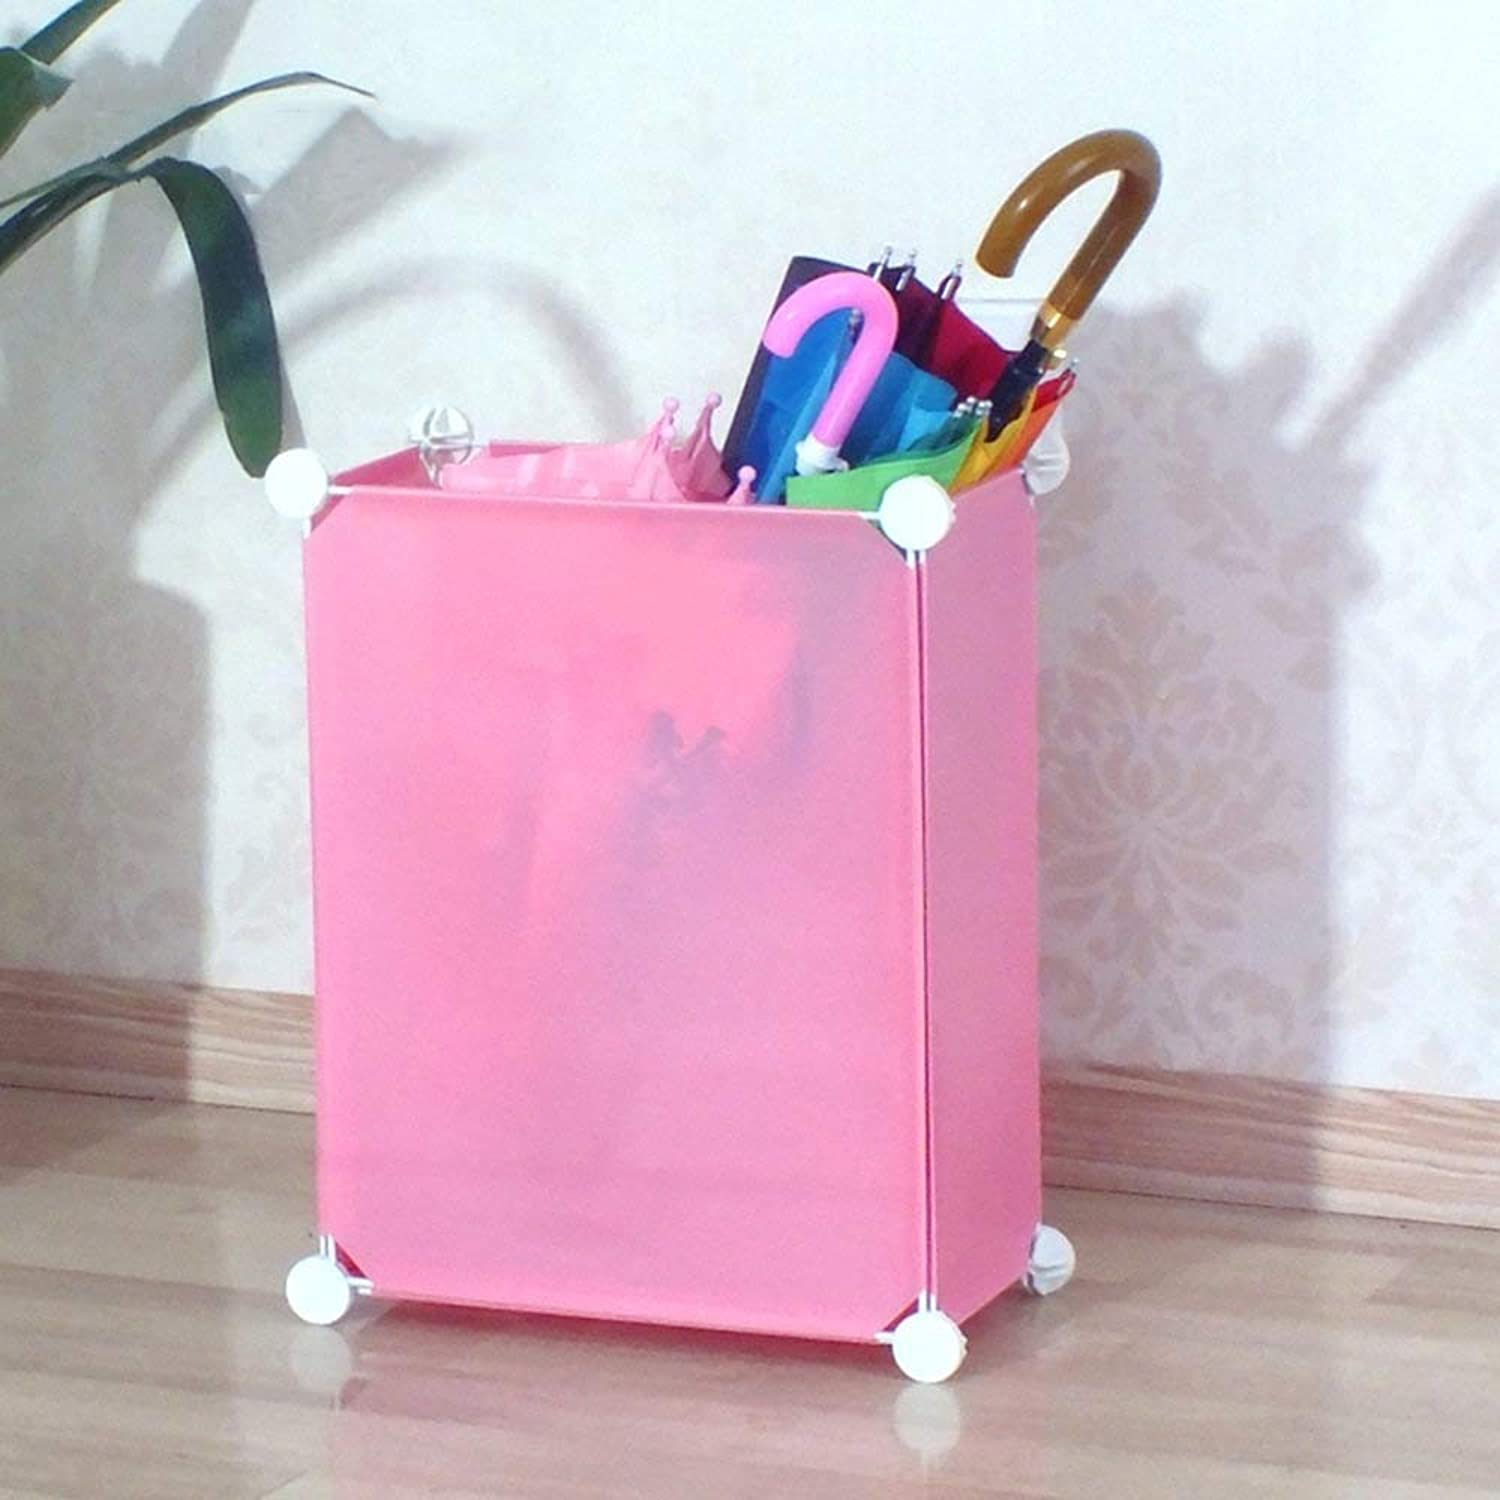 Achang Household Umbrella Stand Hotel Lobby Hanging Umbrella Shelf Storage New Creative Umbrella Tube (color   Pink)